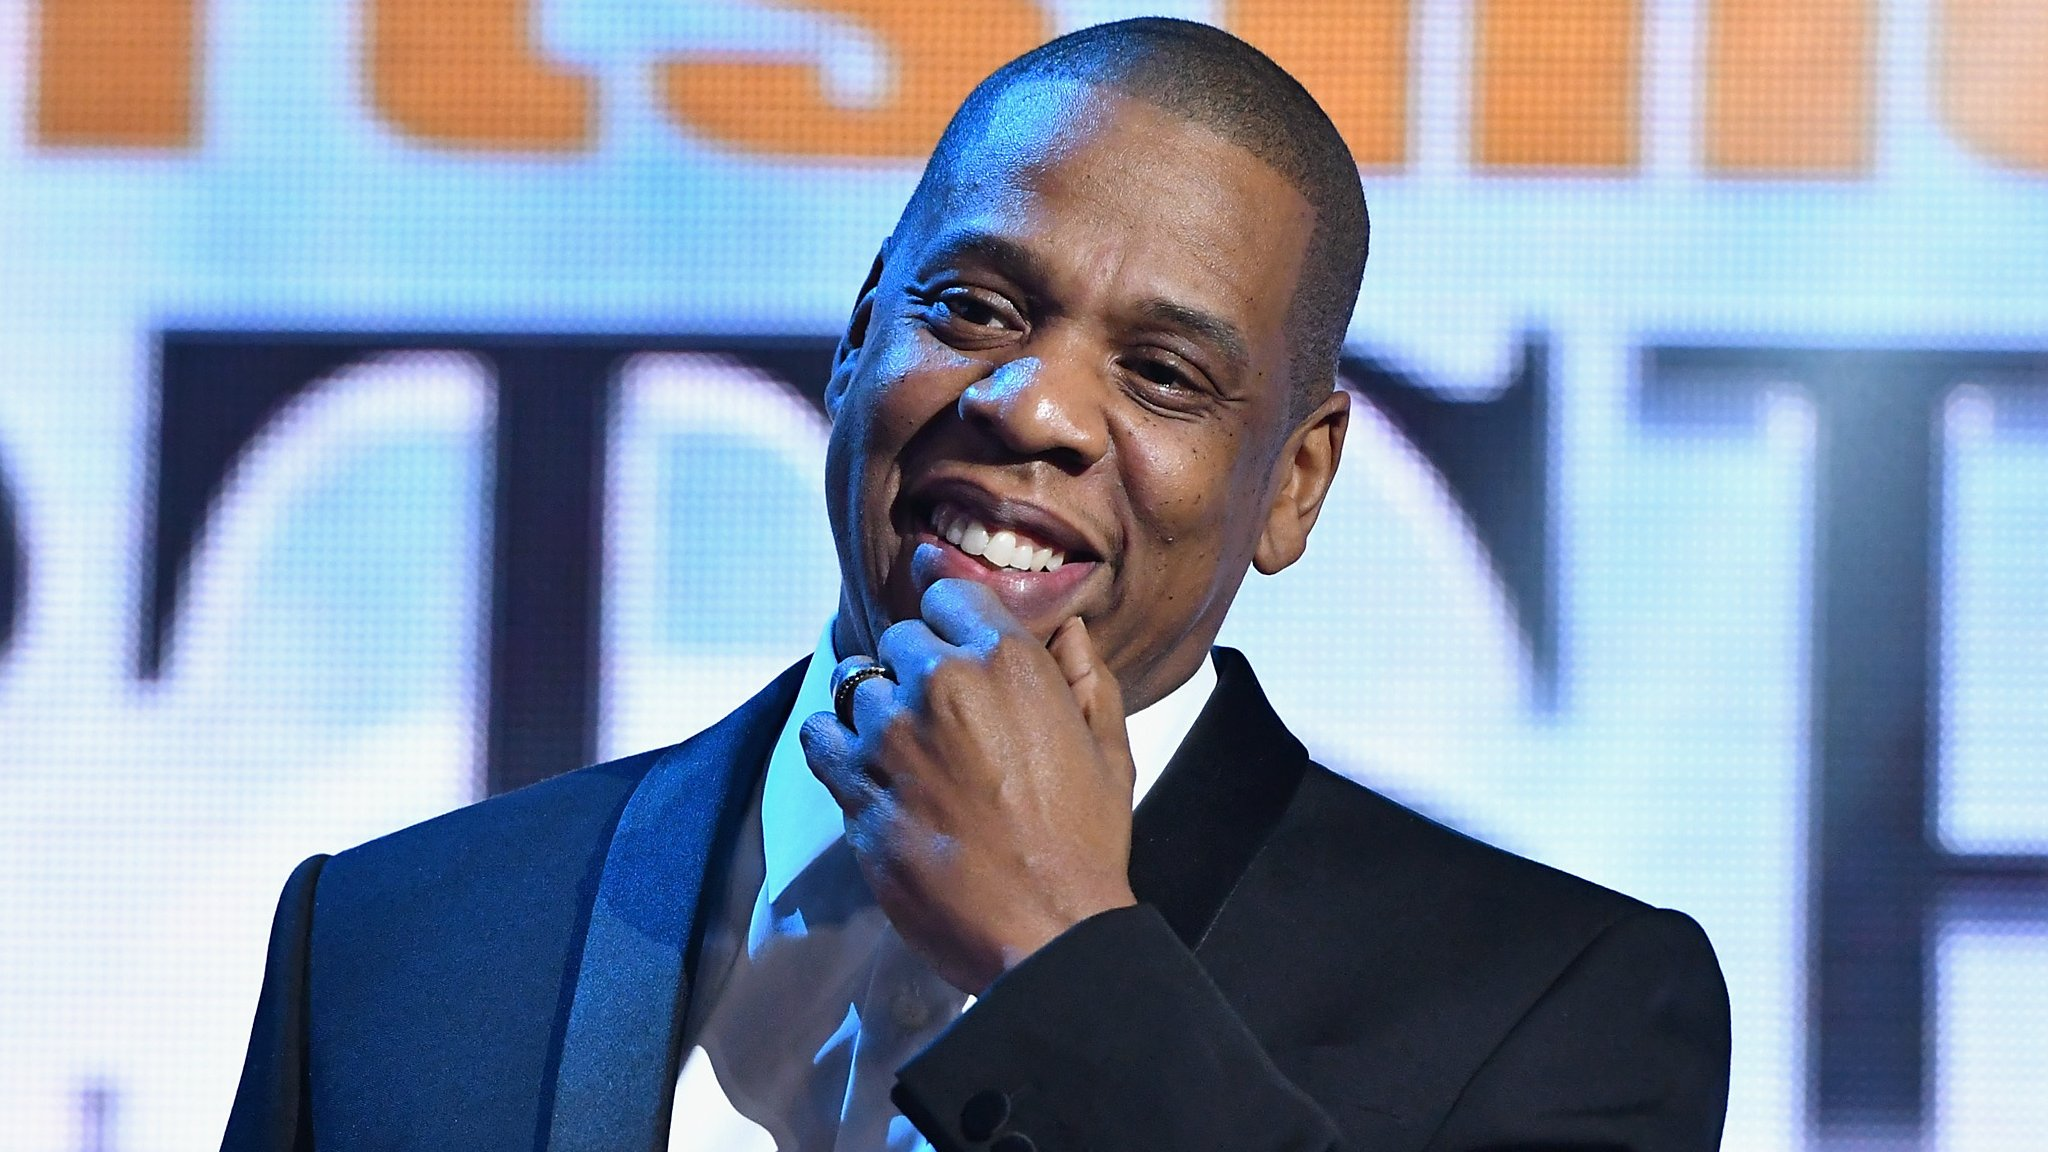 Jay-Z to become first rapper inducted into Songwriters Hall of Fame